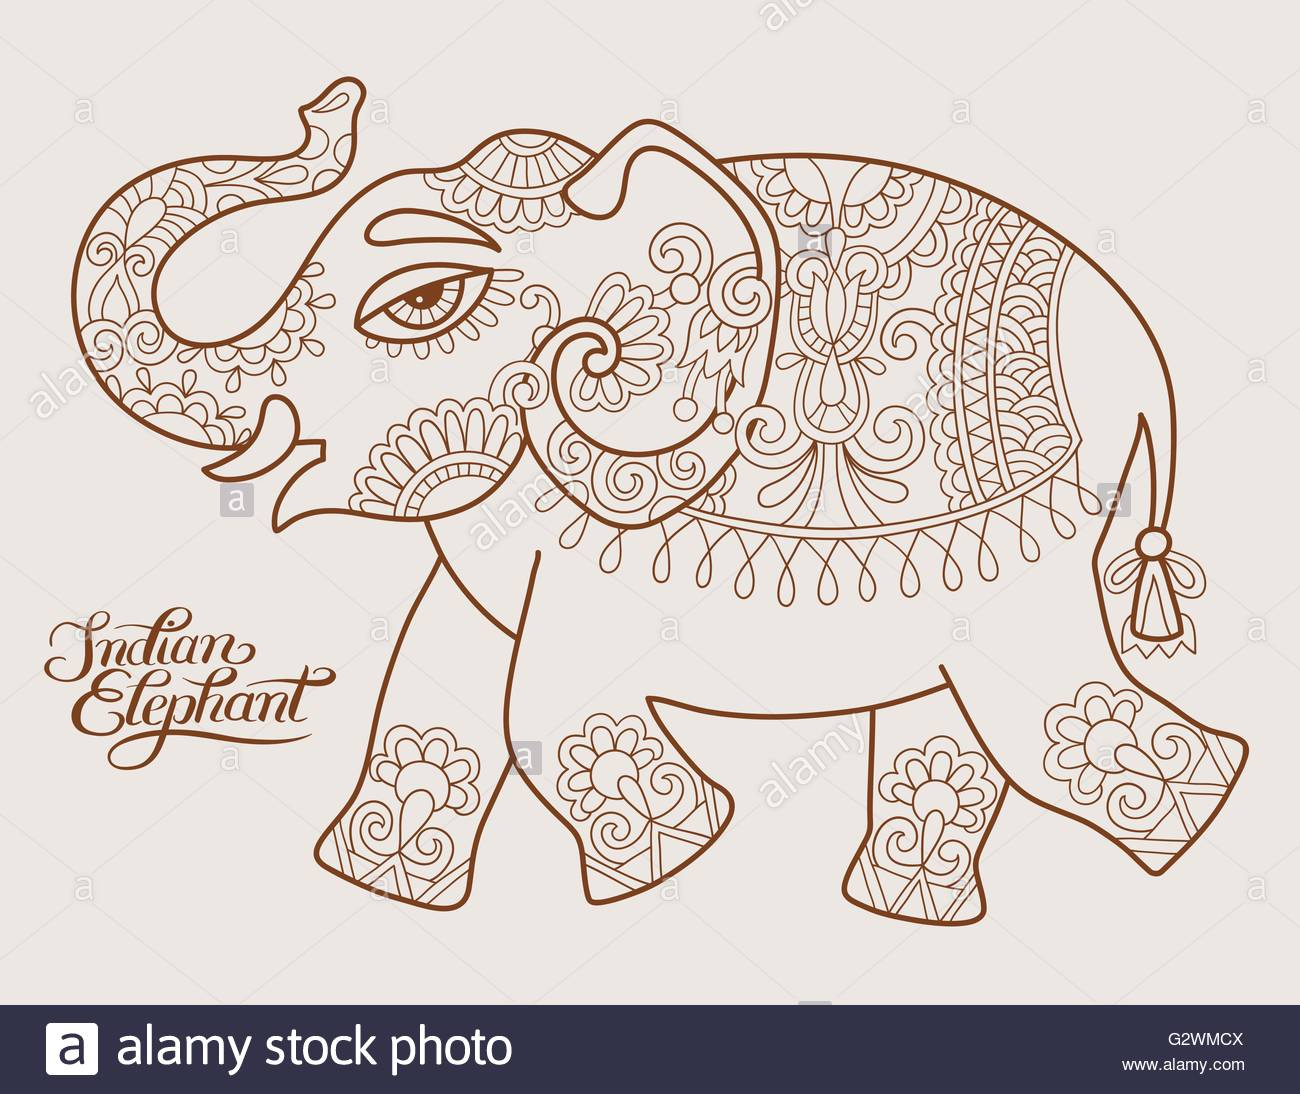 1300x1094 Original Stylized Ethnic Indian Elephant Pattern Drawing And Han